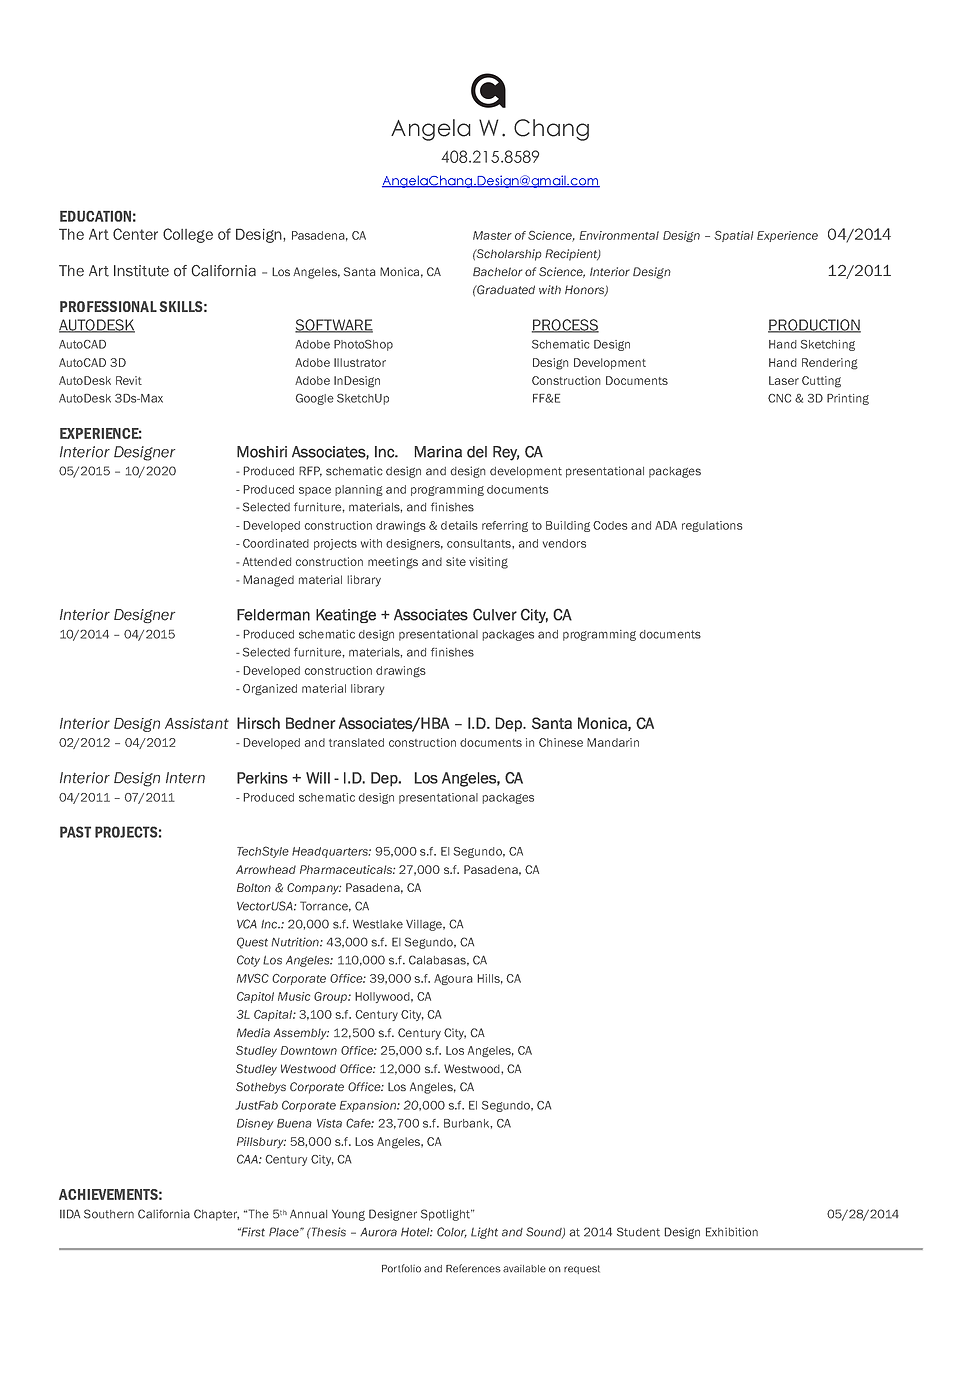 AngelaChang_Resume_Oct2020.tif